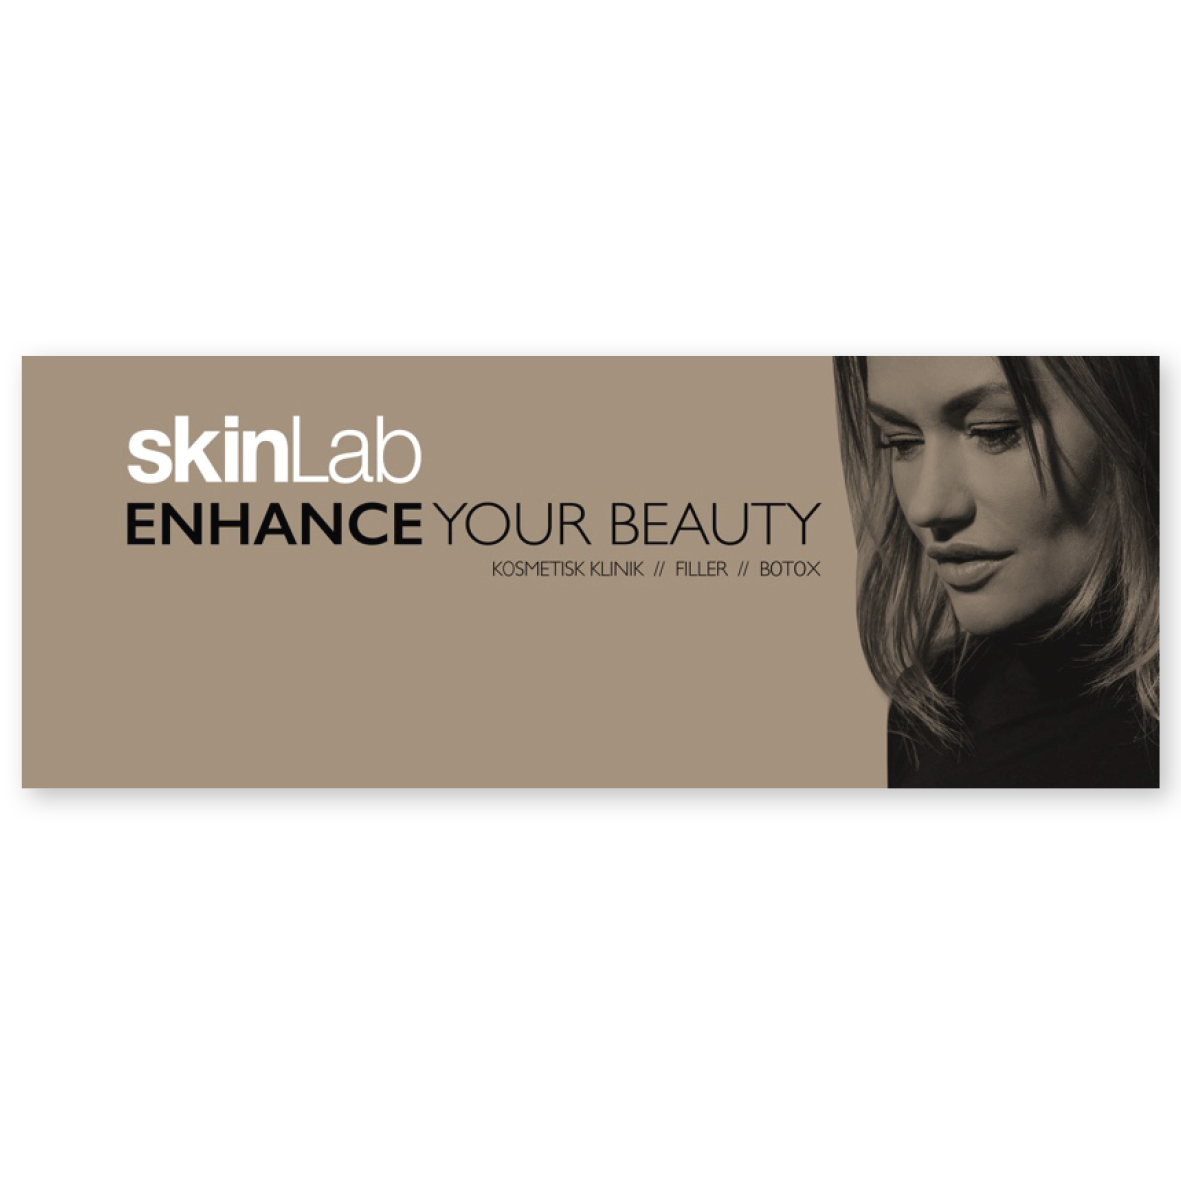 SkinLab Facebook cover